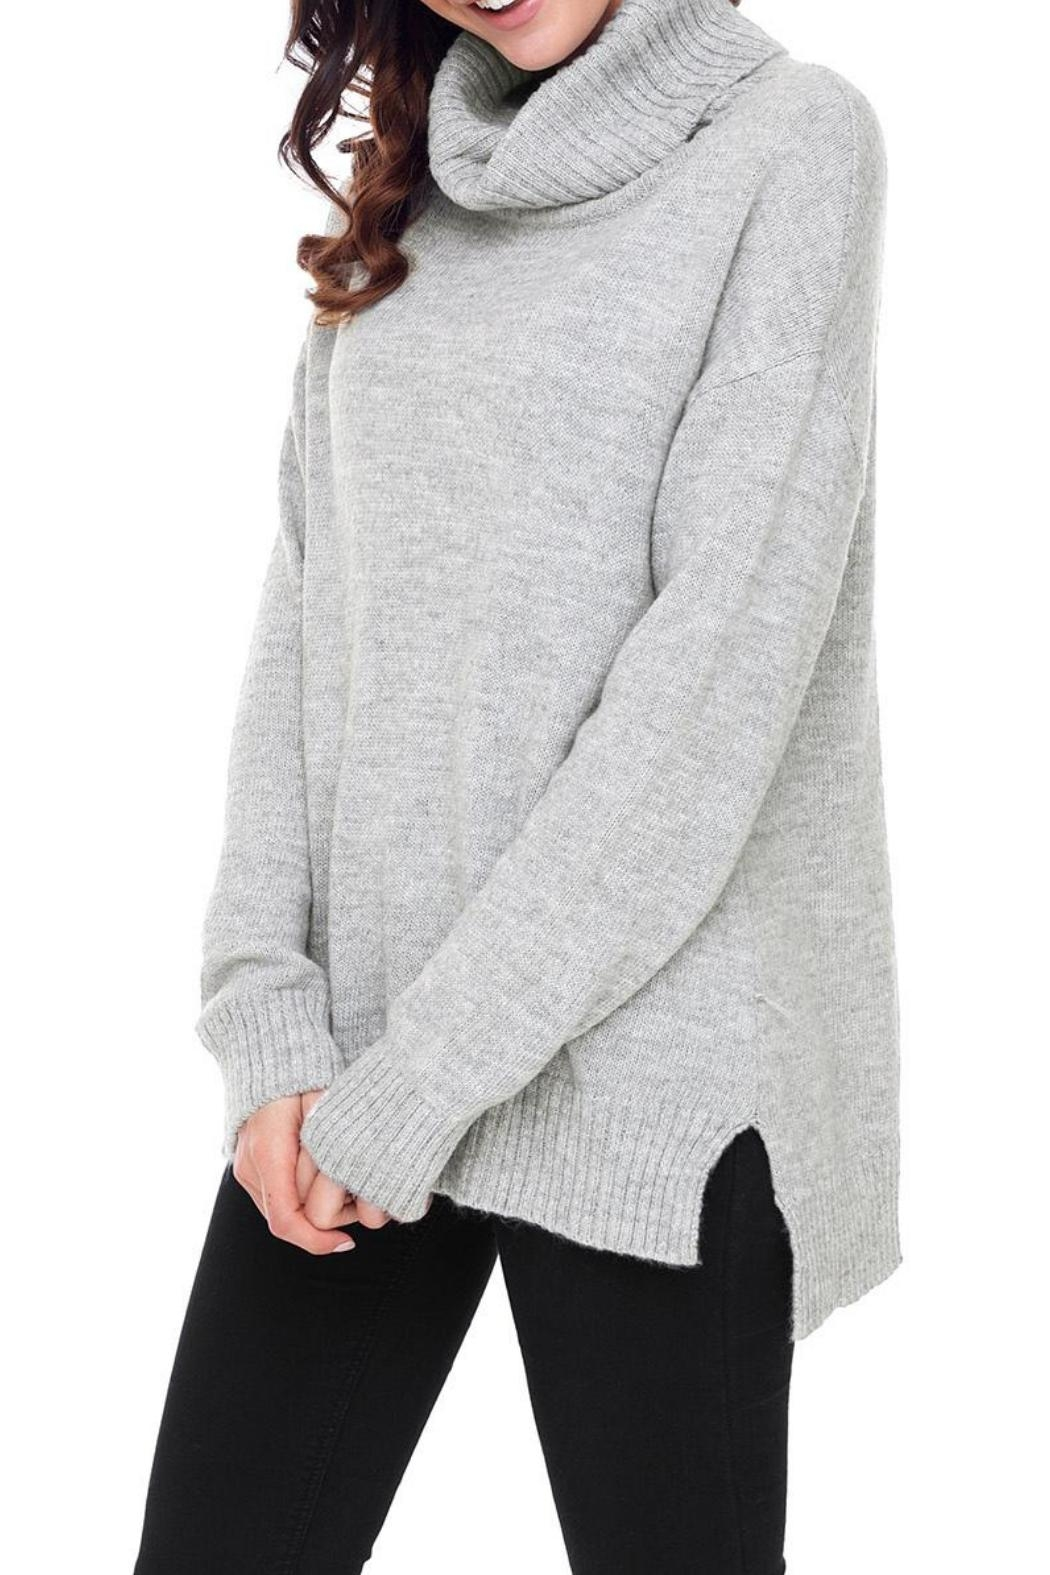 Unbranded Gray Turtleneck Sweater - Side Cropped Image